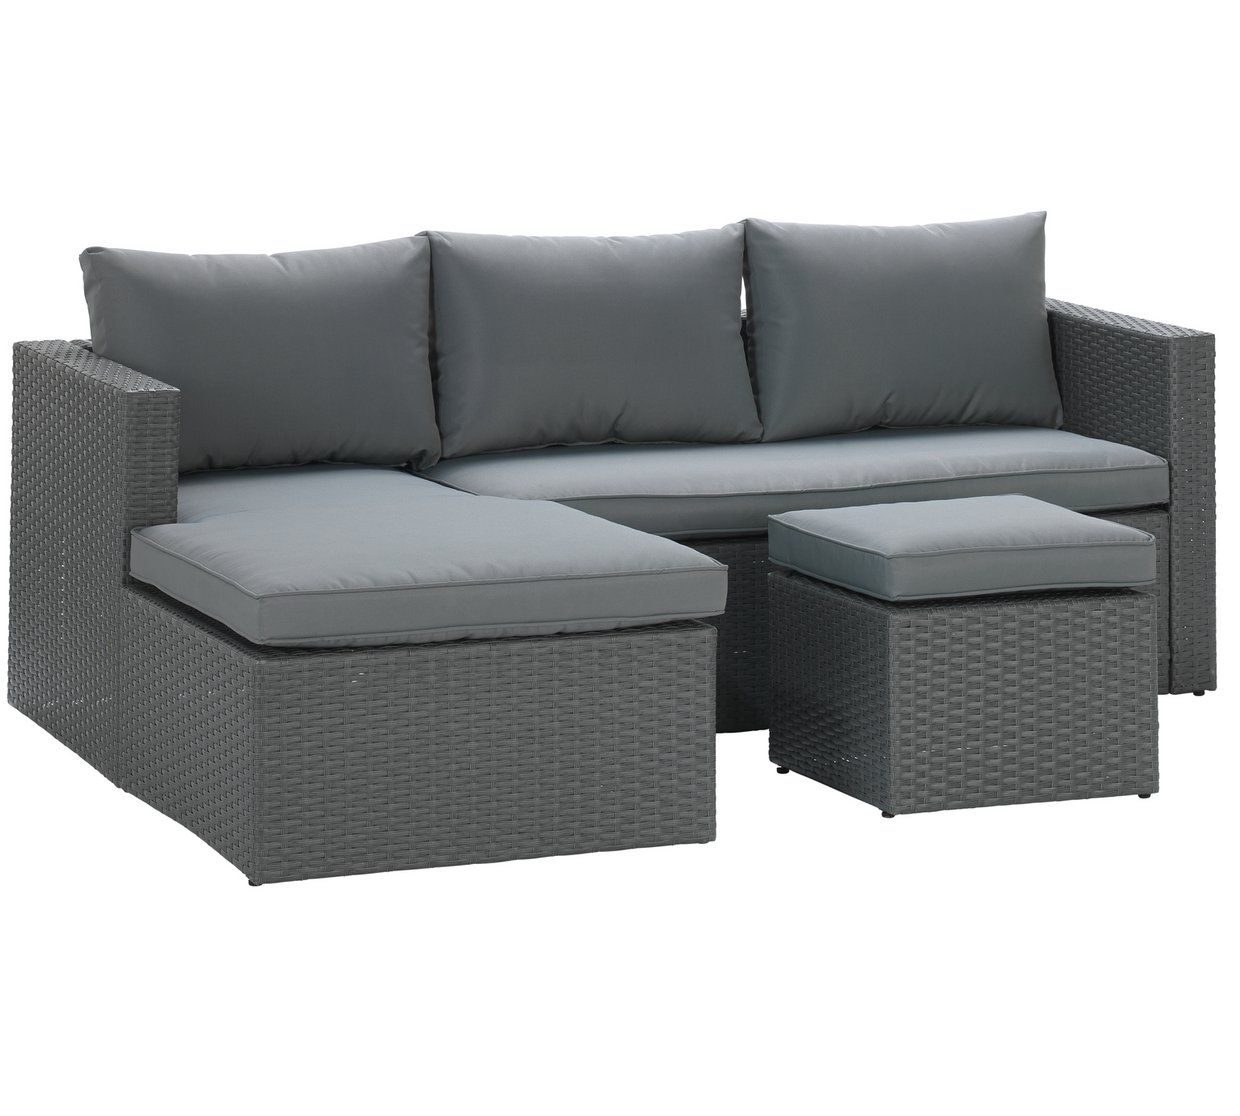 Buy Argos Home Rattan Effect Reversible Mini Corner Sofa Garden Chairs And Sun Loungers Argos Grey Corner Sofa Corner Sofa Sofa